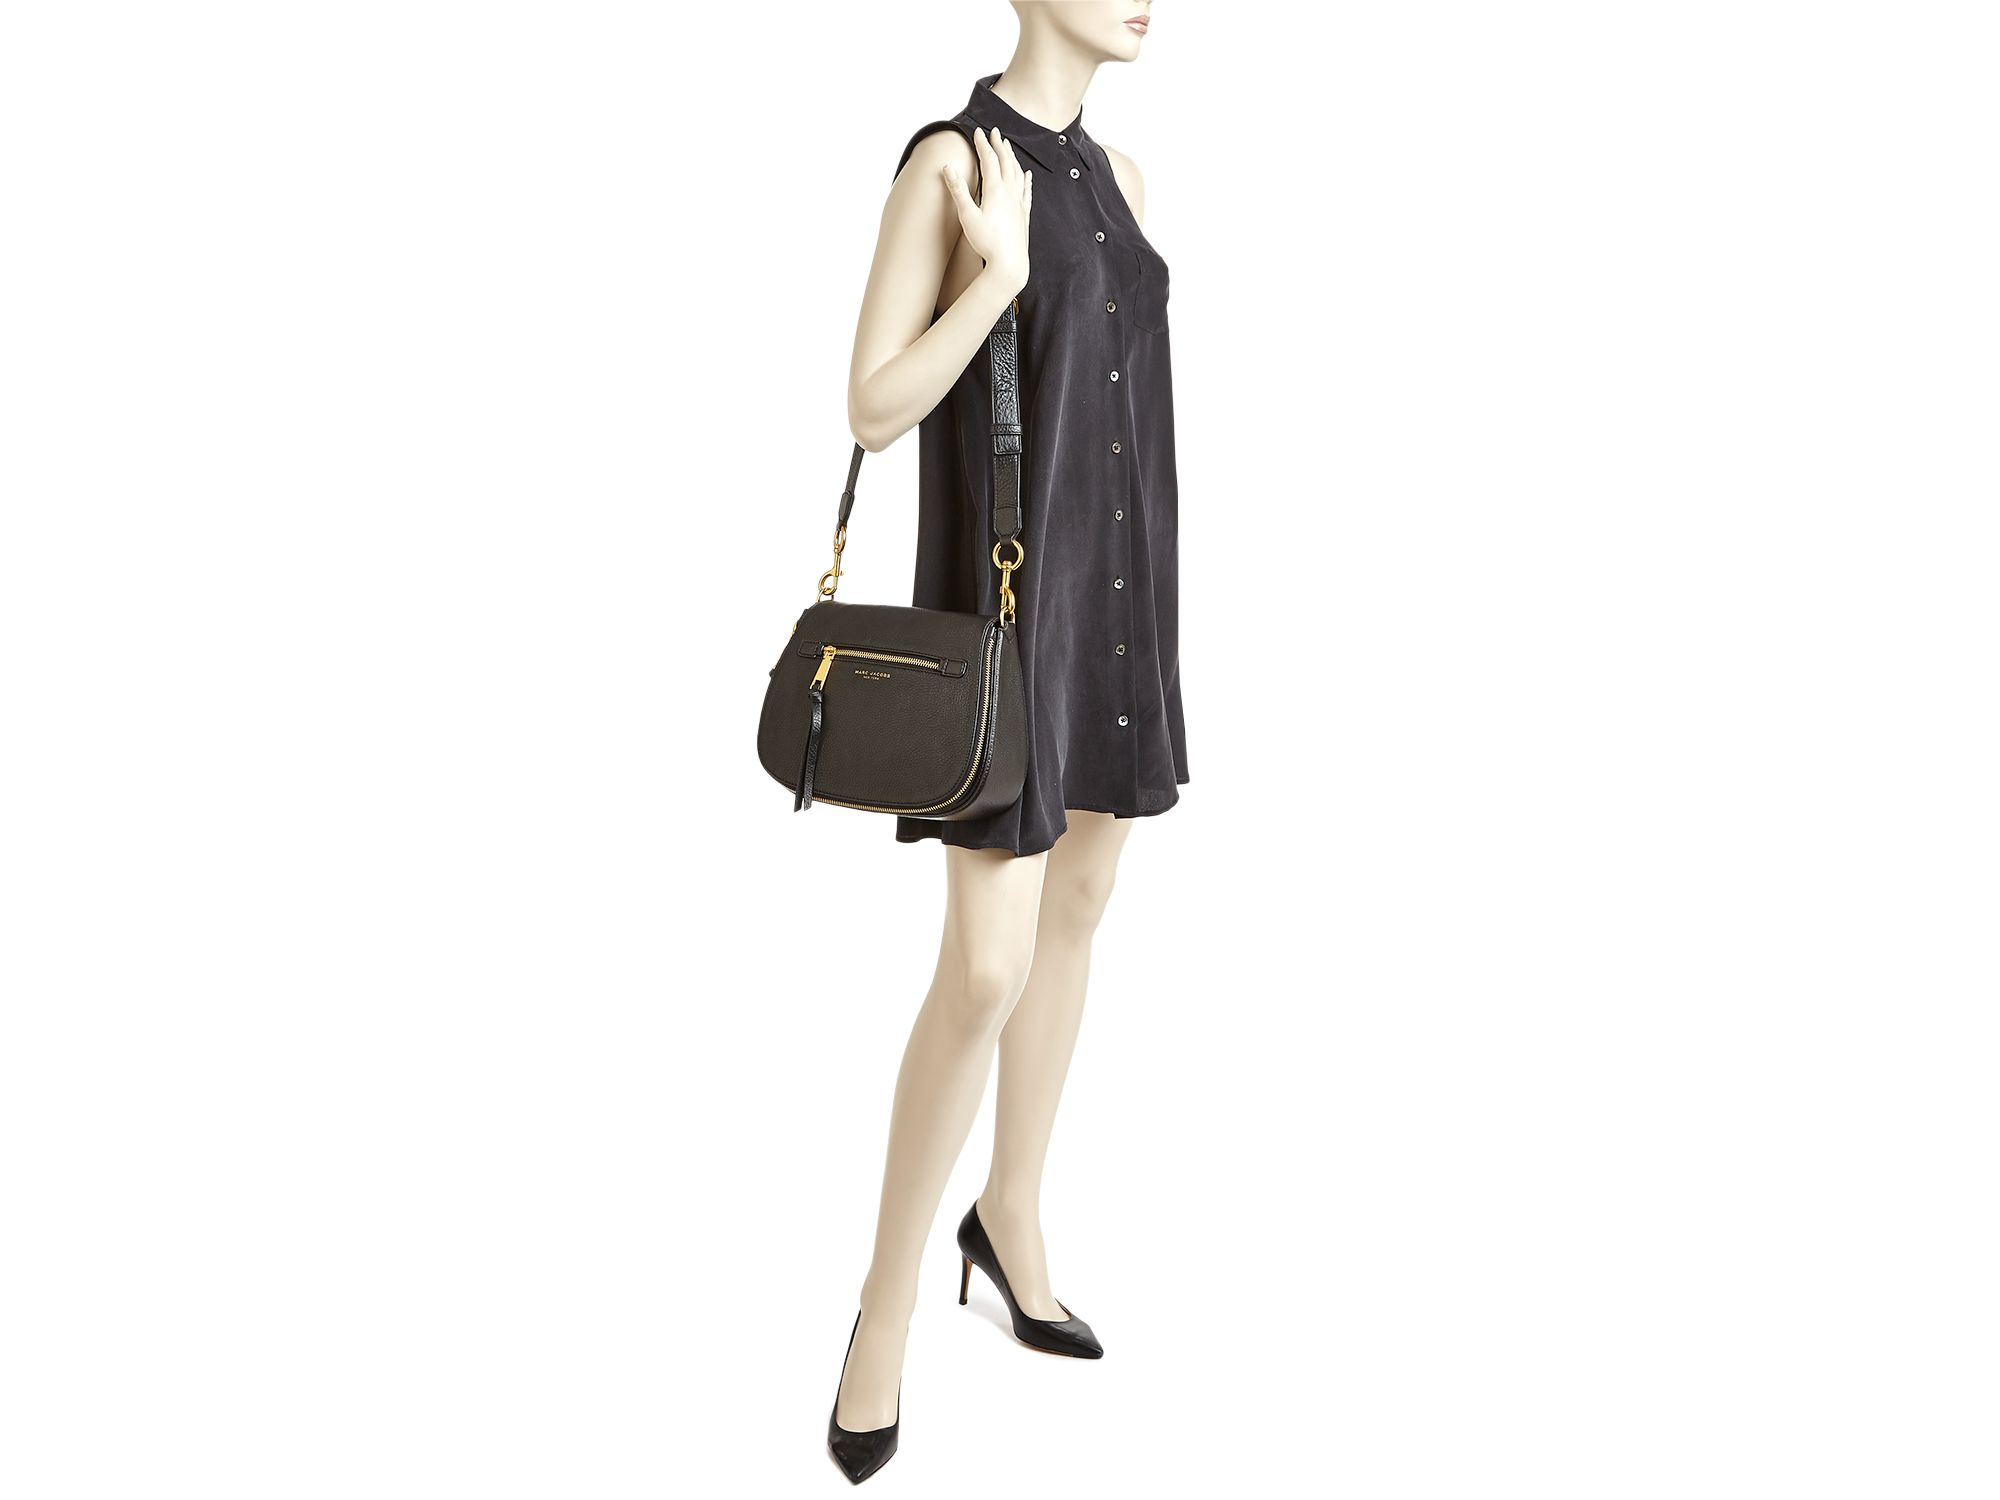 52caee57c313 Lyst - Marc Jacobs Recruit Saddle Bag in Natural